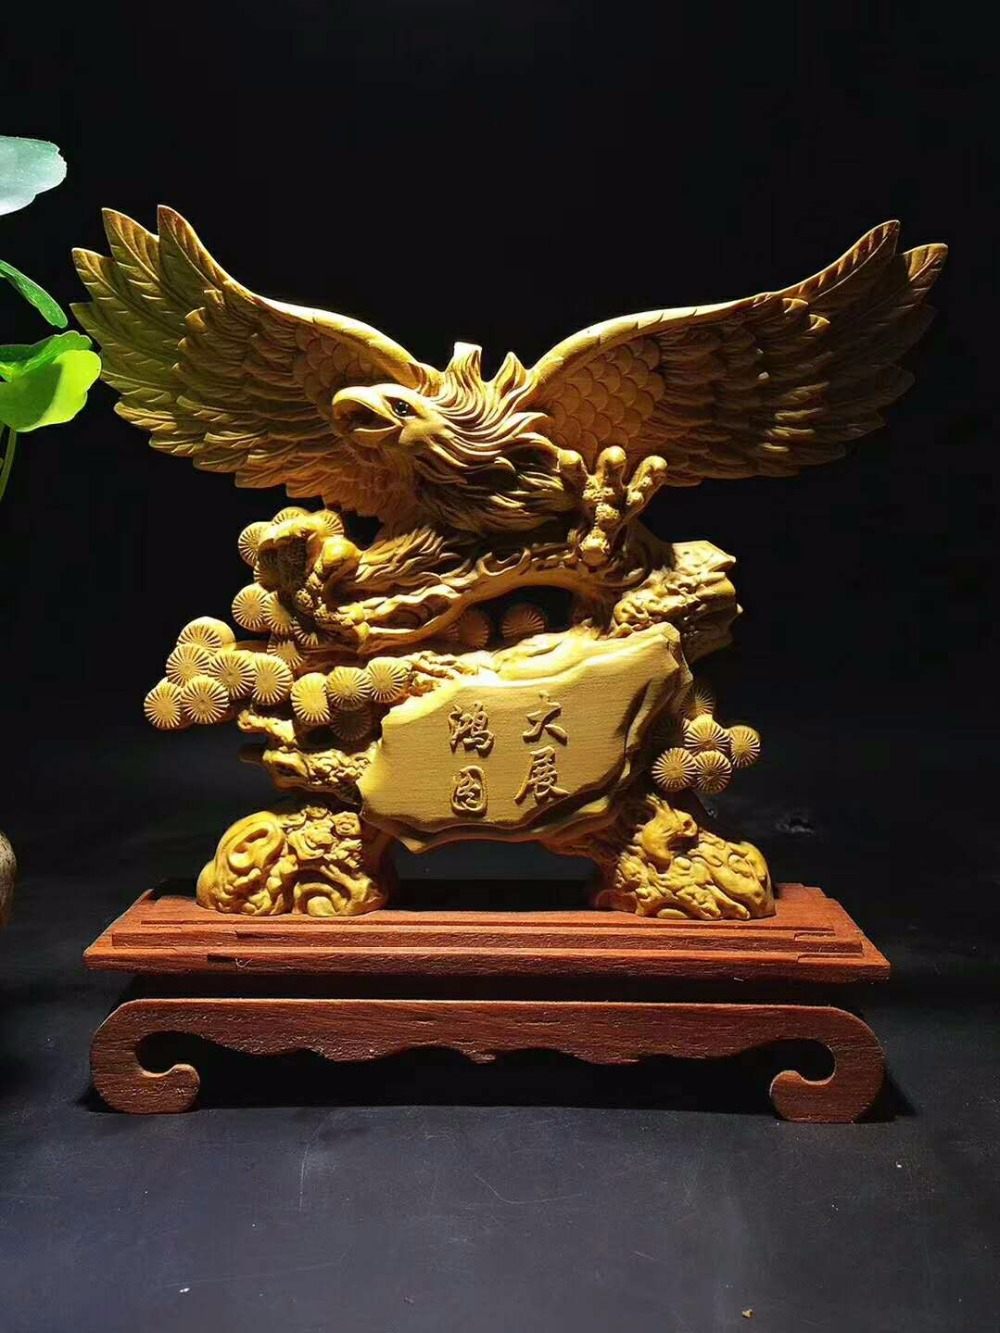 Try new Thuja wood carving ornaments crafts Eagle soar cloud Home Furnishing ornaments.Try new Thuja wood carving ornaments crafts Eagle soar cloud Home Furnishing ornaments.